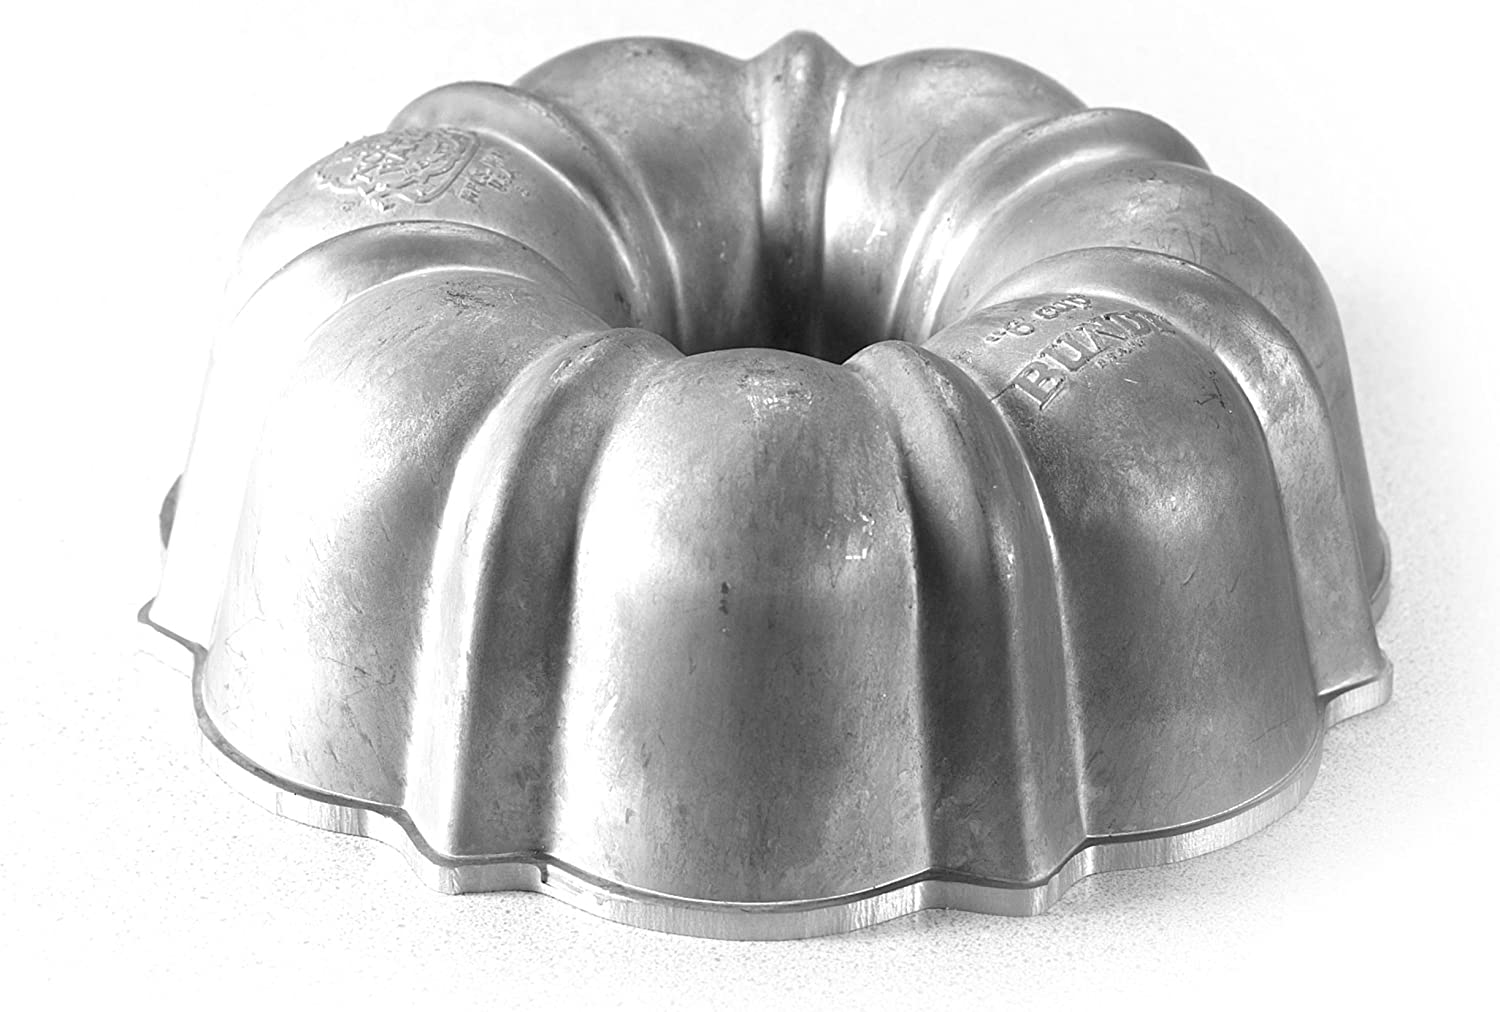 Nordic Ware Commercial Original Bundt Pan with Premium Non-Stick Coating, 6-Cup